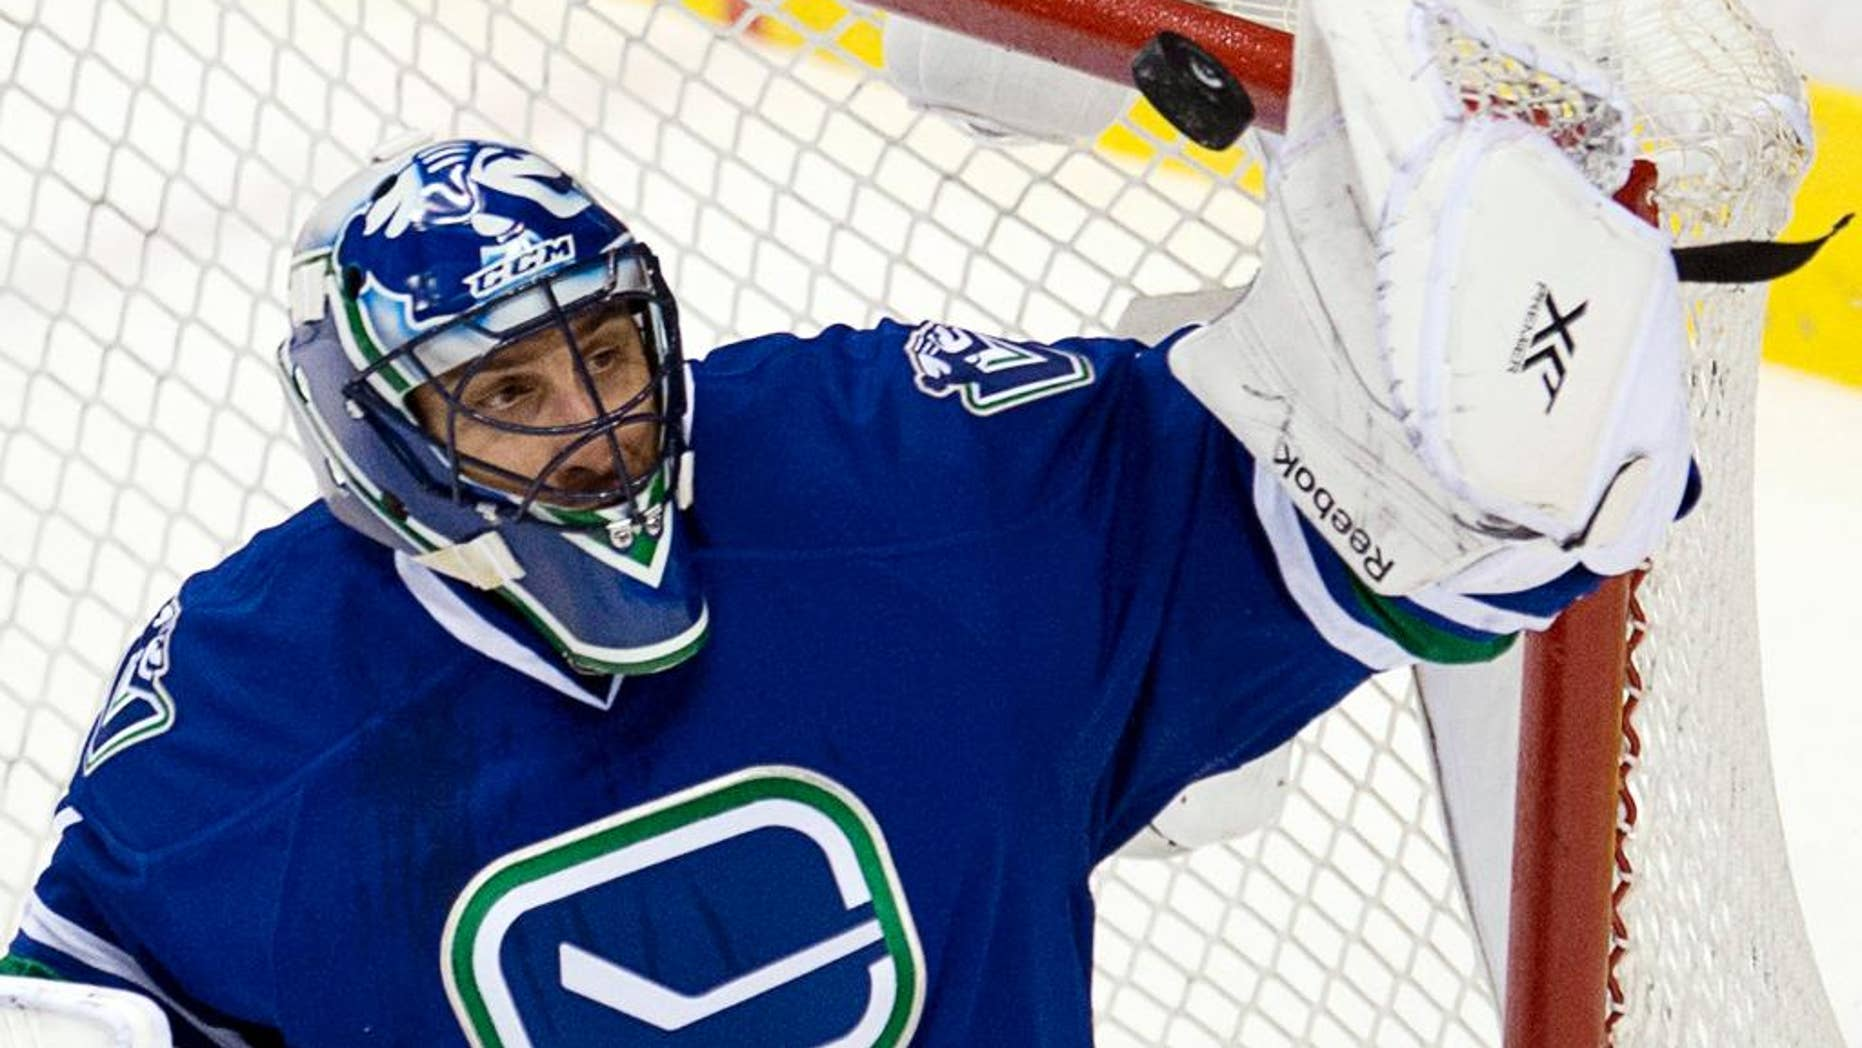 FILE - In this Jan. 29, 2014, file photo, Vancouver Canucks goalie Roberto Luongo makes a save during the first period of an NHL hockey game against the Chicago Blackhawks in Vancouver, British Columbia. Luongo was traded by the Canucks to the Panthers, who gave up goalie Jacob Markstrom and forward Shawn Mattias to make the deal happen. (AP Photo/The Canadian Press, Jonathan Hayward, File)